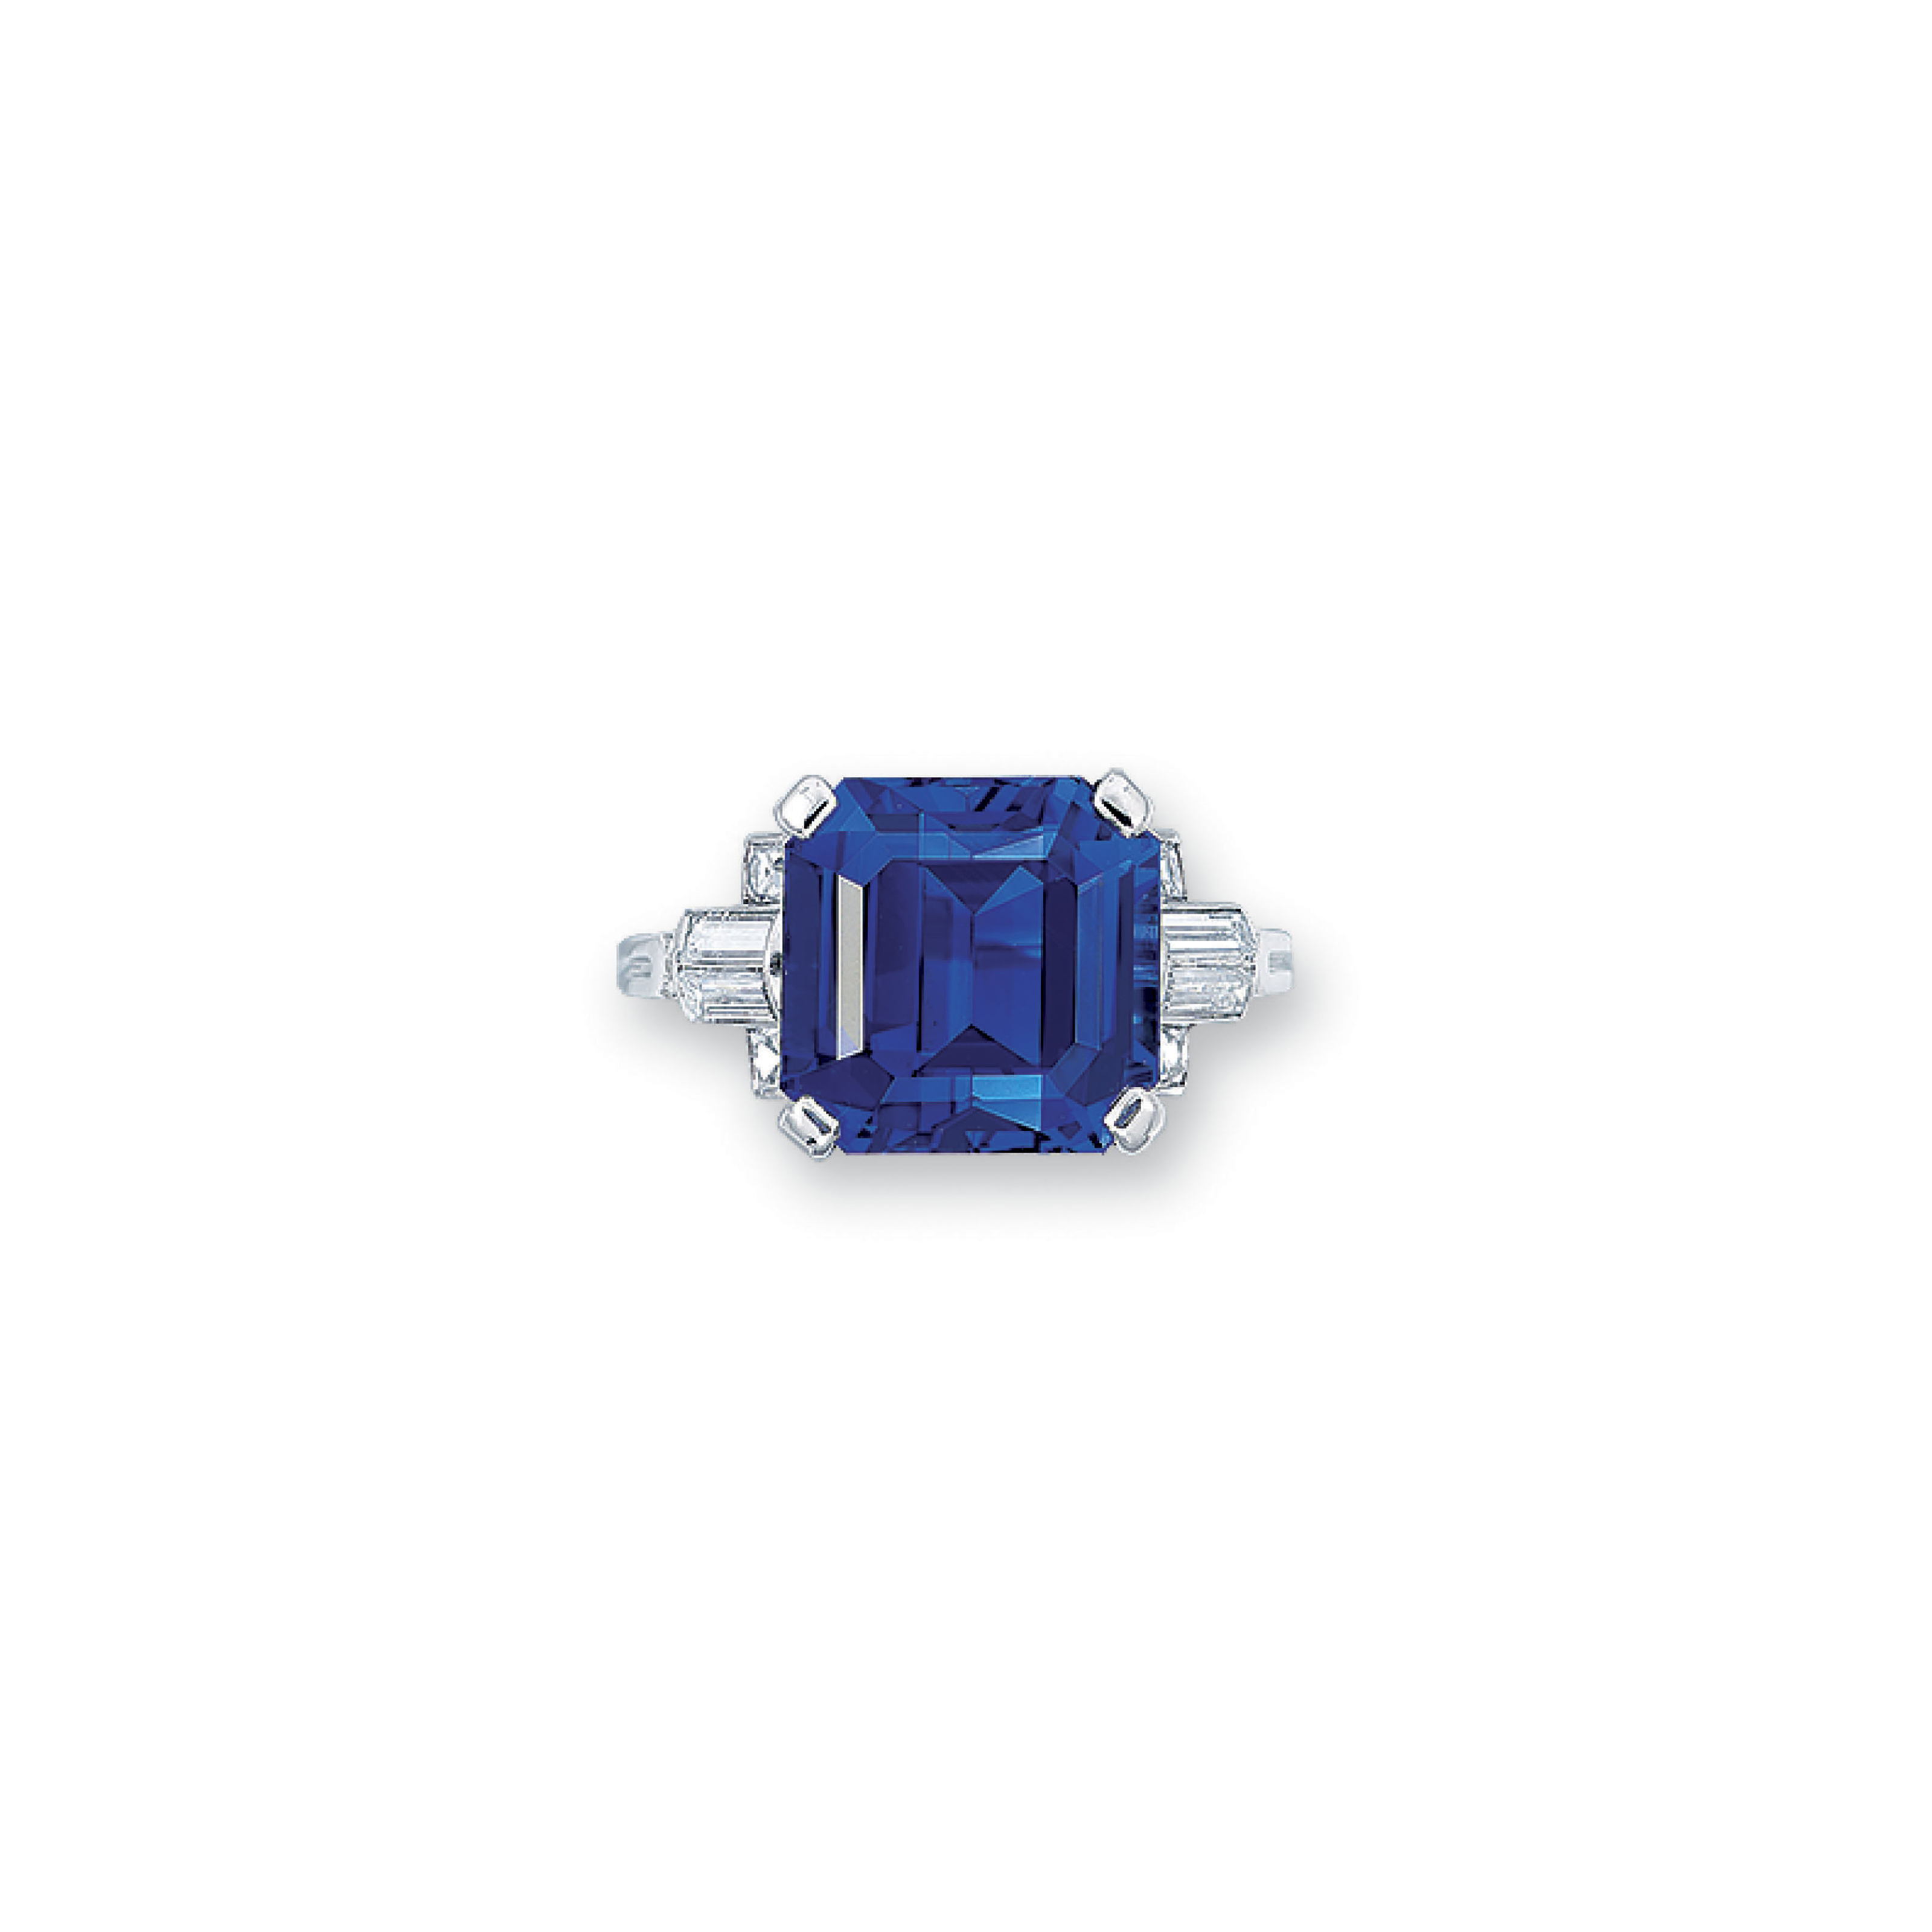 b02a01983 AN IMPORTANT SAPPHIRE AND DIAMOND RING, BY TIFFANY & CO.   Christie's